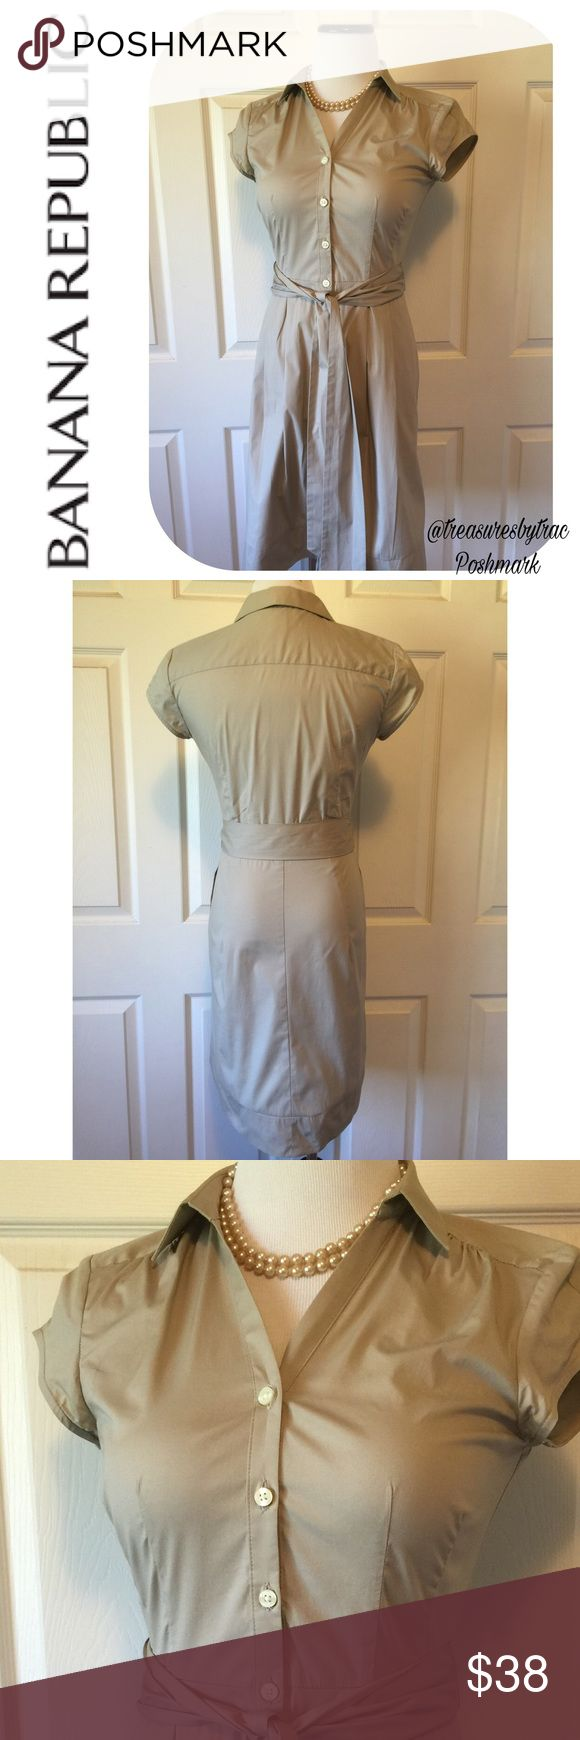 """BANANA REPUBLIC KHAKI SHIRT DRESS Button down, cap sleeves, khaki shirt dress by Banana Republic in excellent condition. 🔹Size 2P: 36"""" length, 32"""" bust. Our mannequin is a 4-6 for reference. 🔹Fabric: 97% cotton 3% spandex.🔹No trades🔹Smoke free home🔹Bundle discount: 10% off two, 15% off three items. 🔹Thank you for visiting!💕🌻💕 Banana Republic Dresses"""